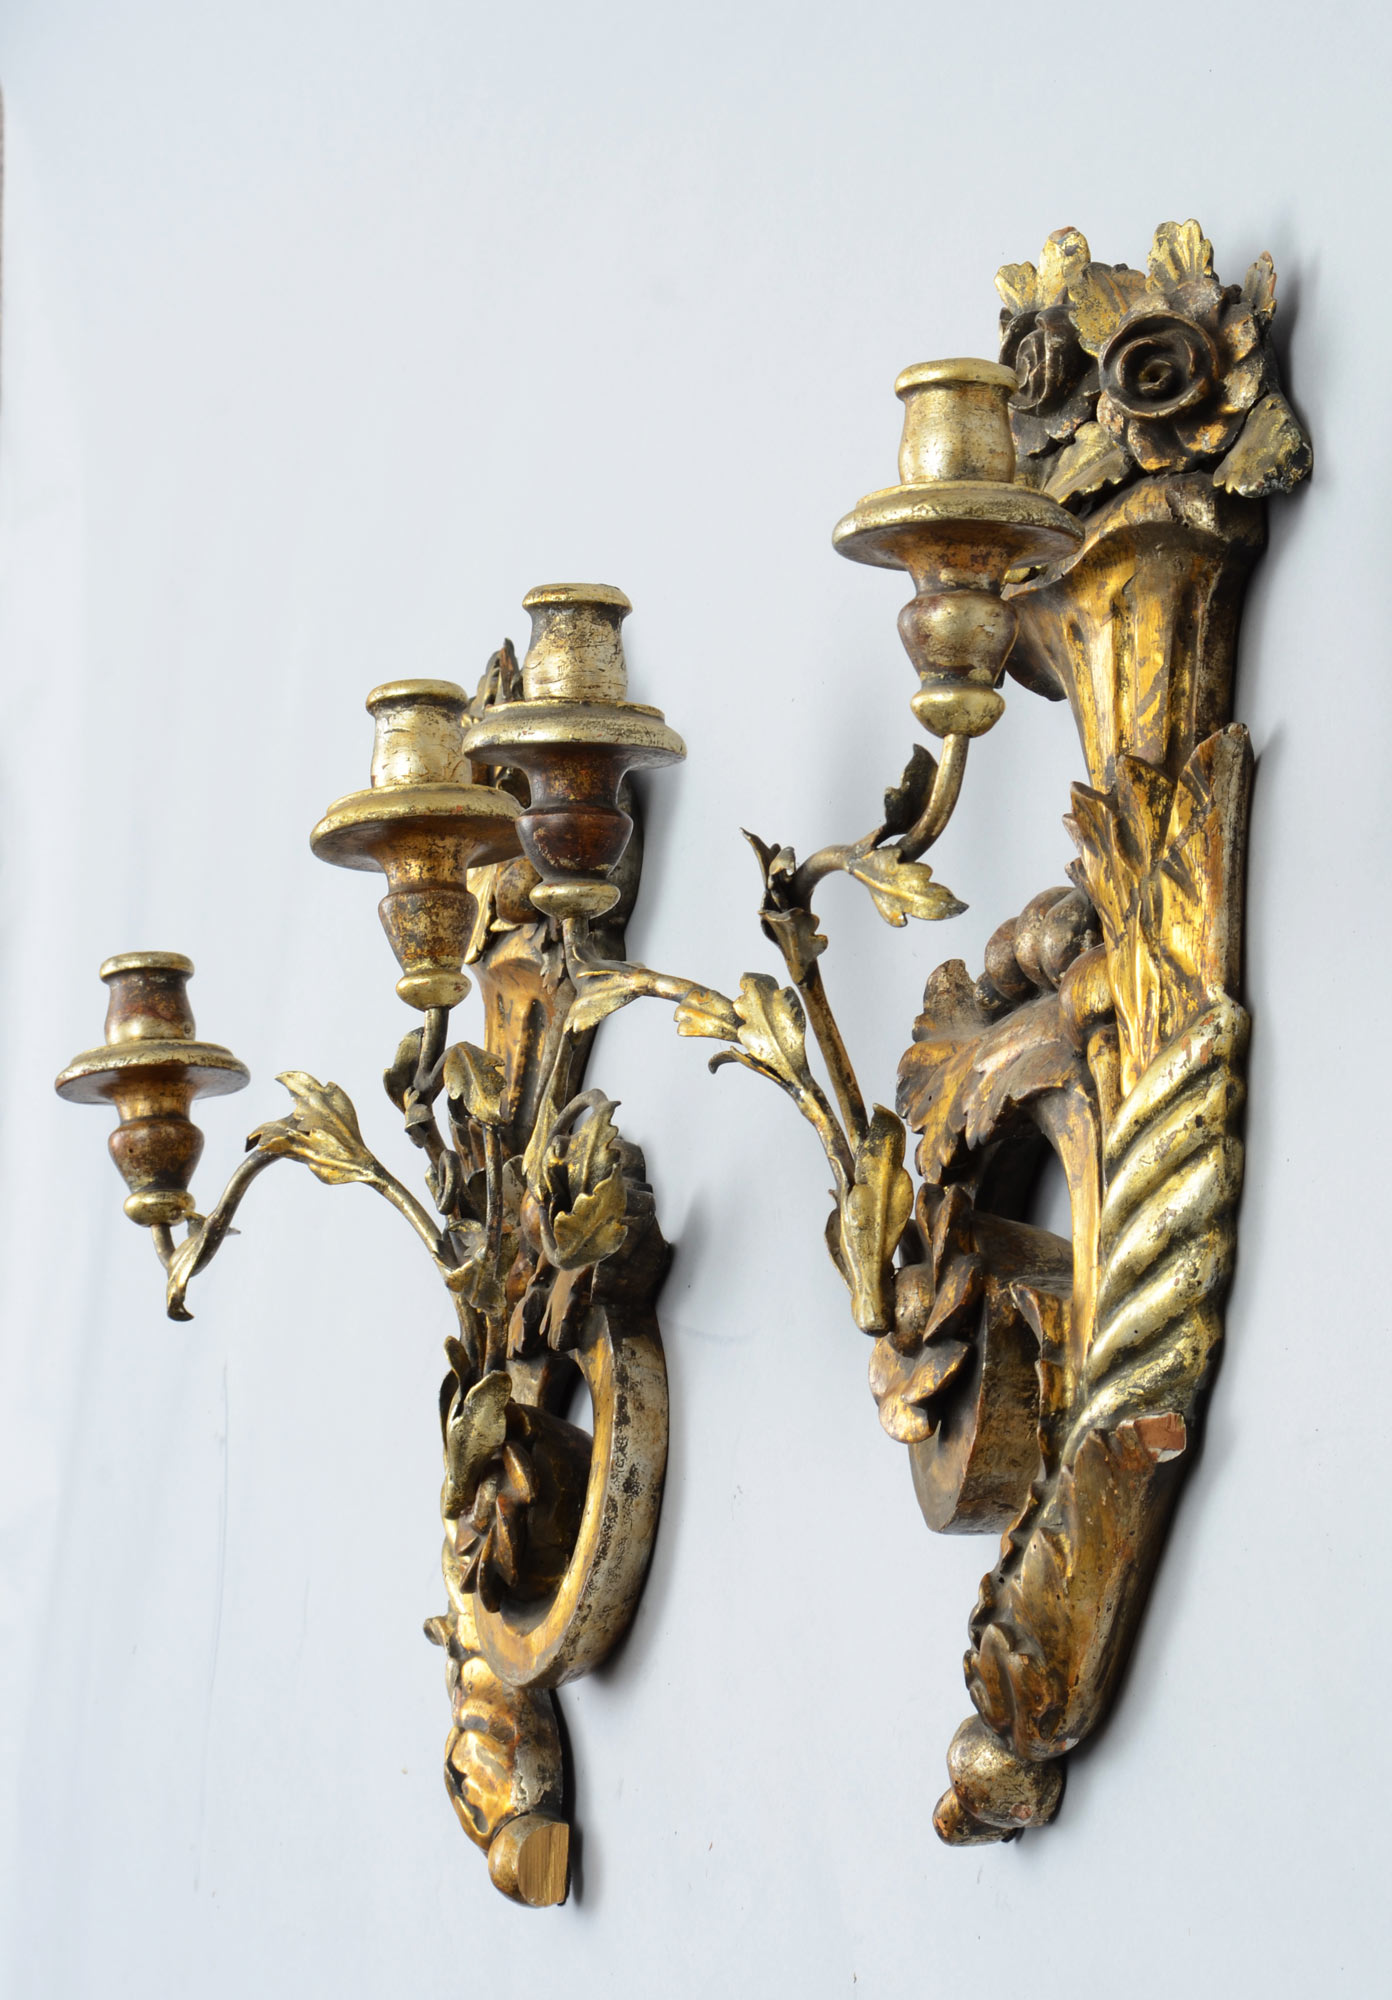 Pair of Italian Antique Gilded Wall Sconces, 19th Century